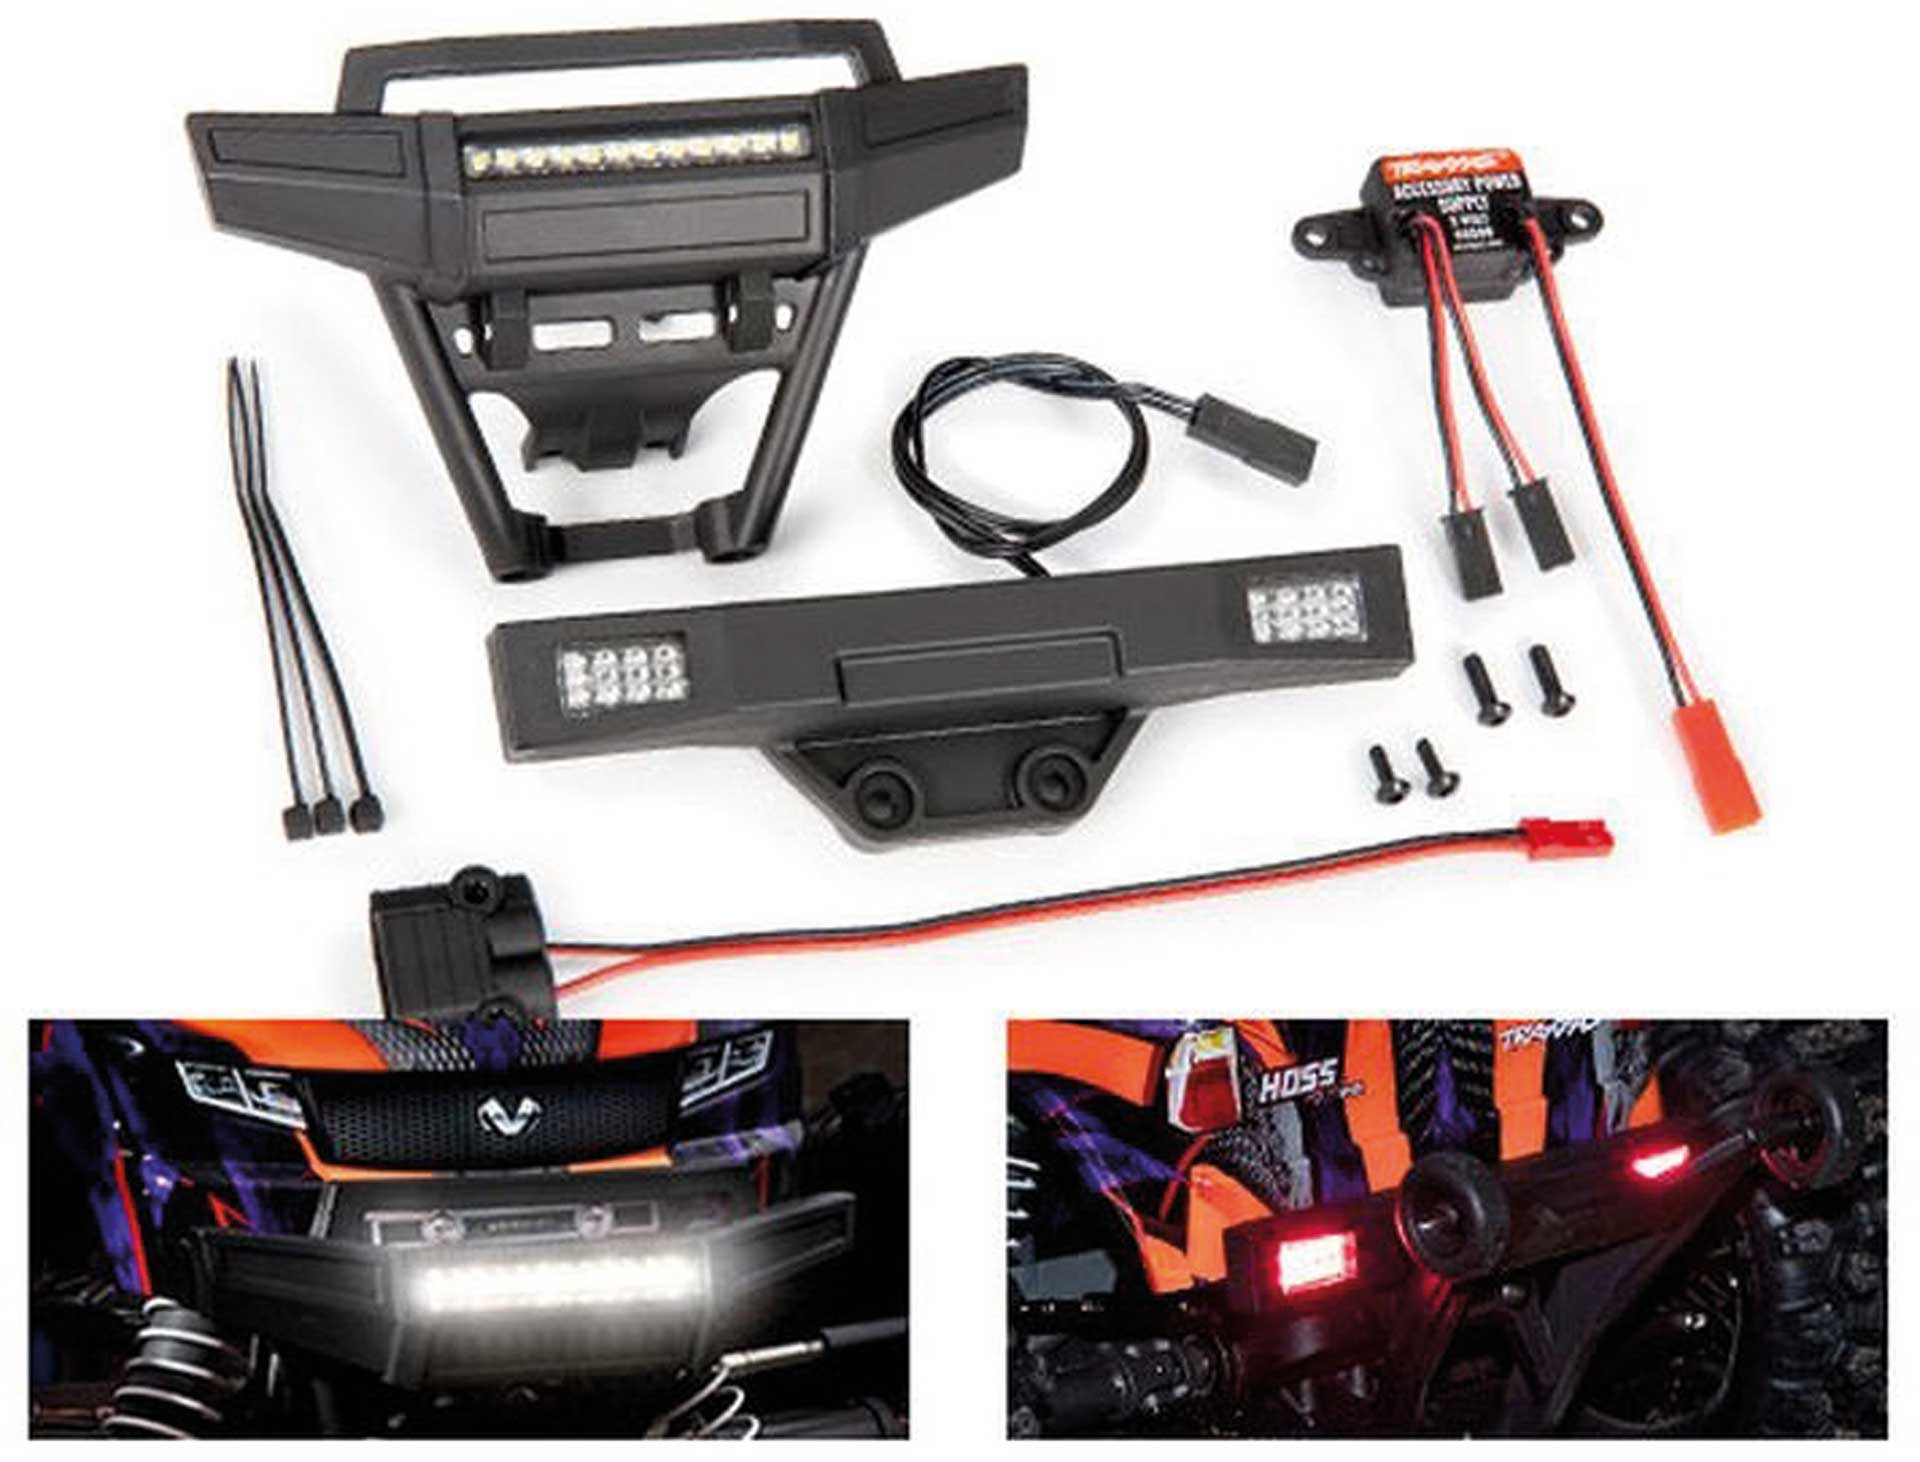 TRAXXAS HOSS Lights-Set complete with Power supply for 9011 Chassis